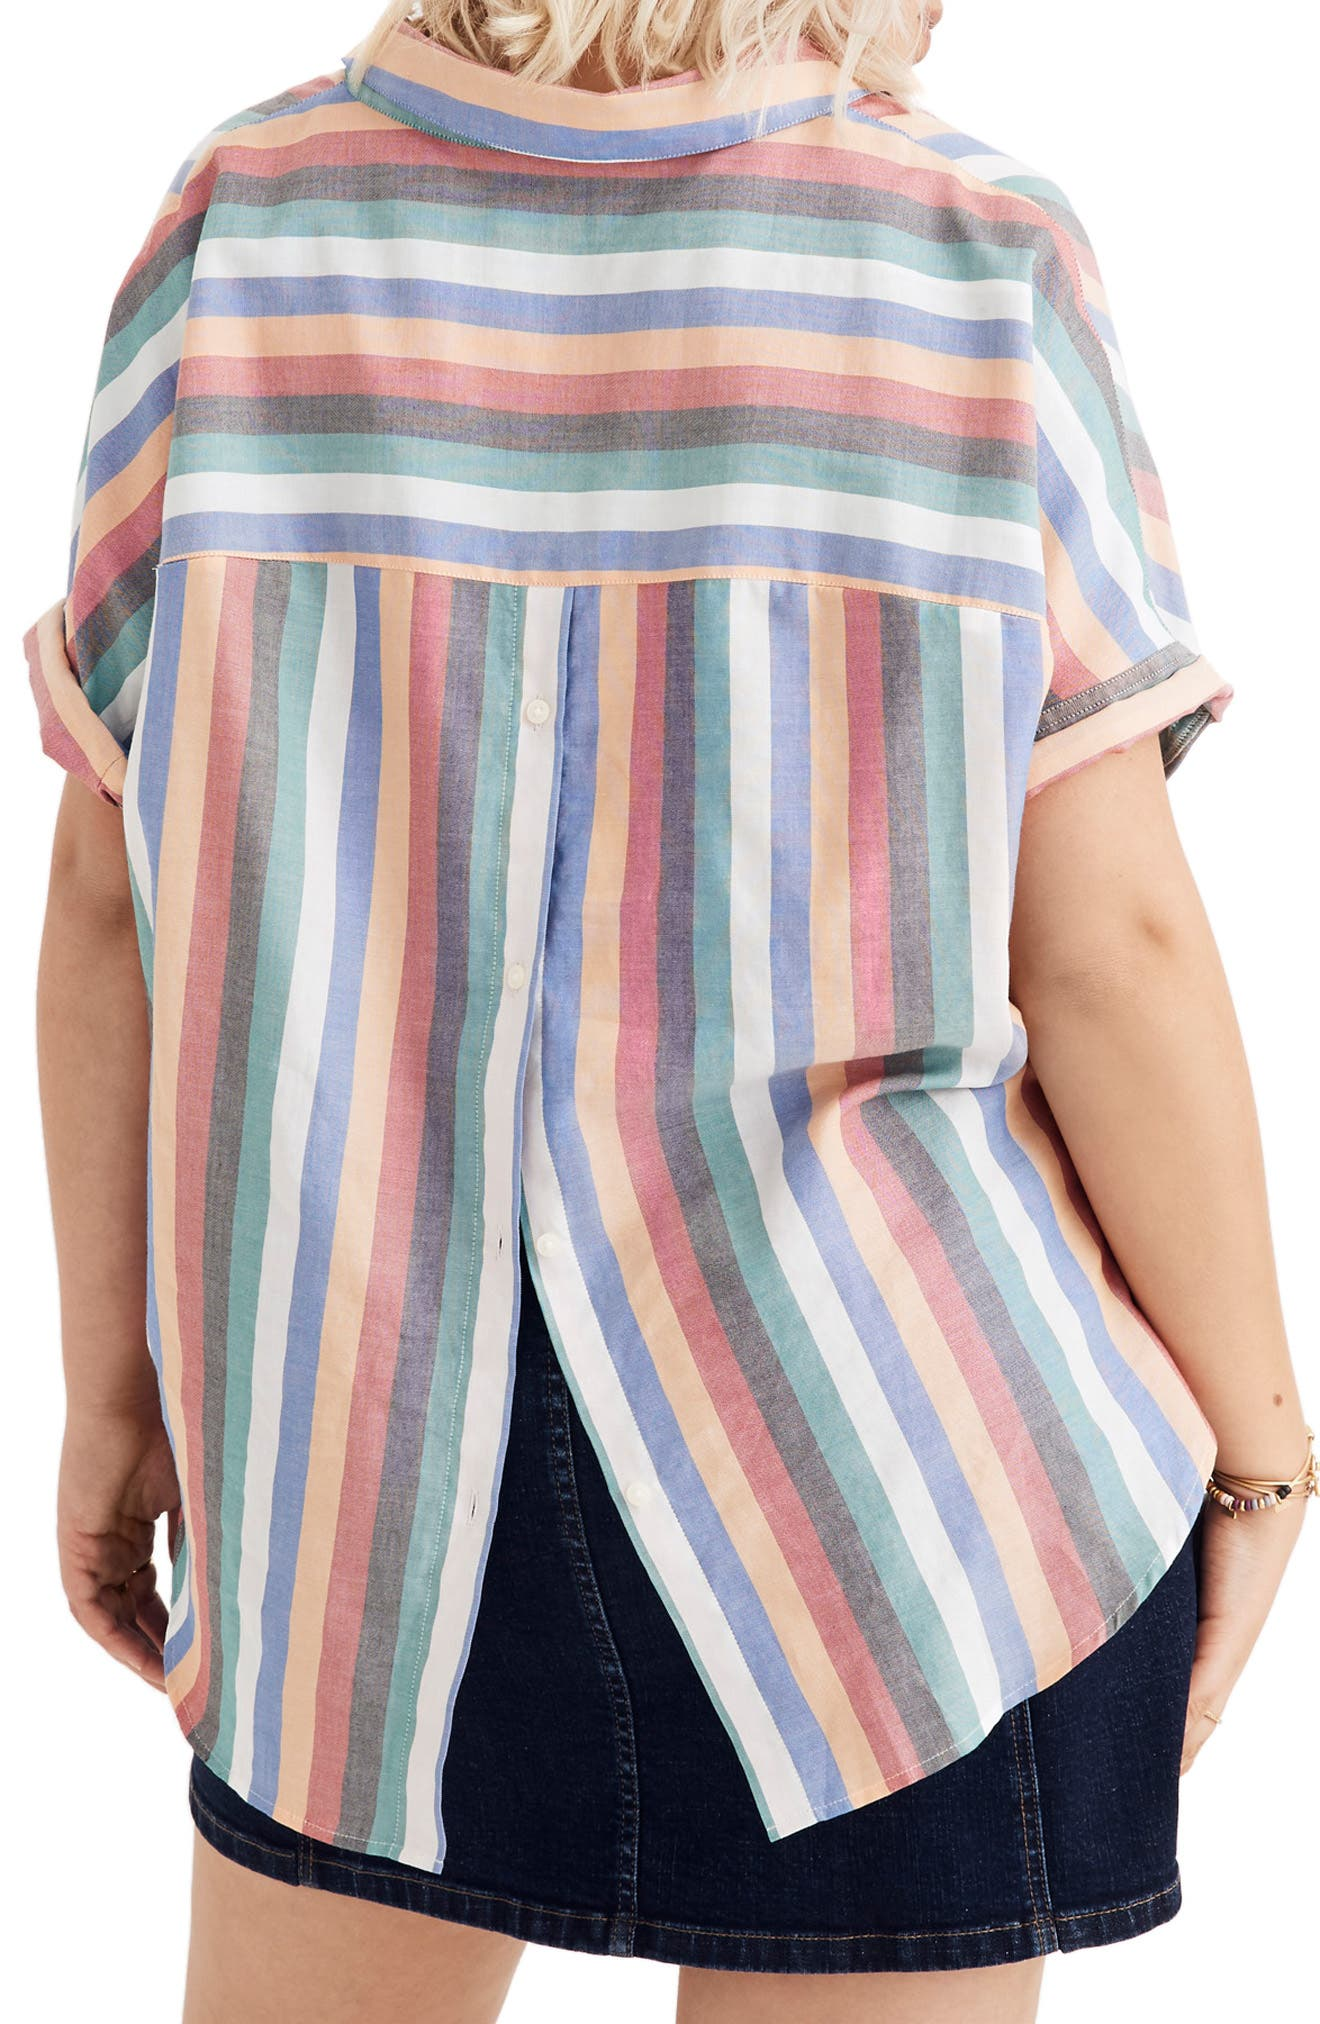 Courier Button Back Shirt,                             Alternate thumbnail 6, color,                             MULTI STRIPE